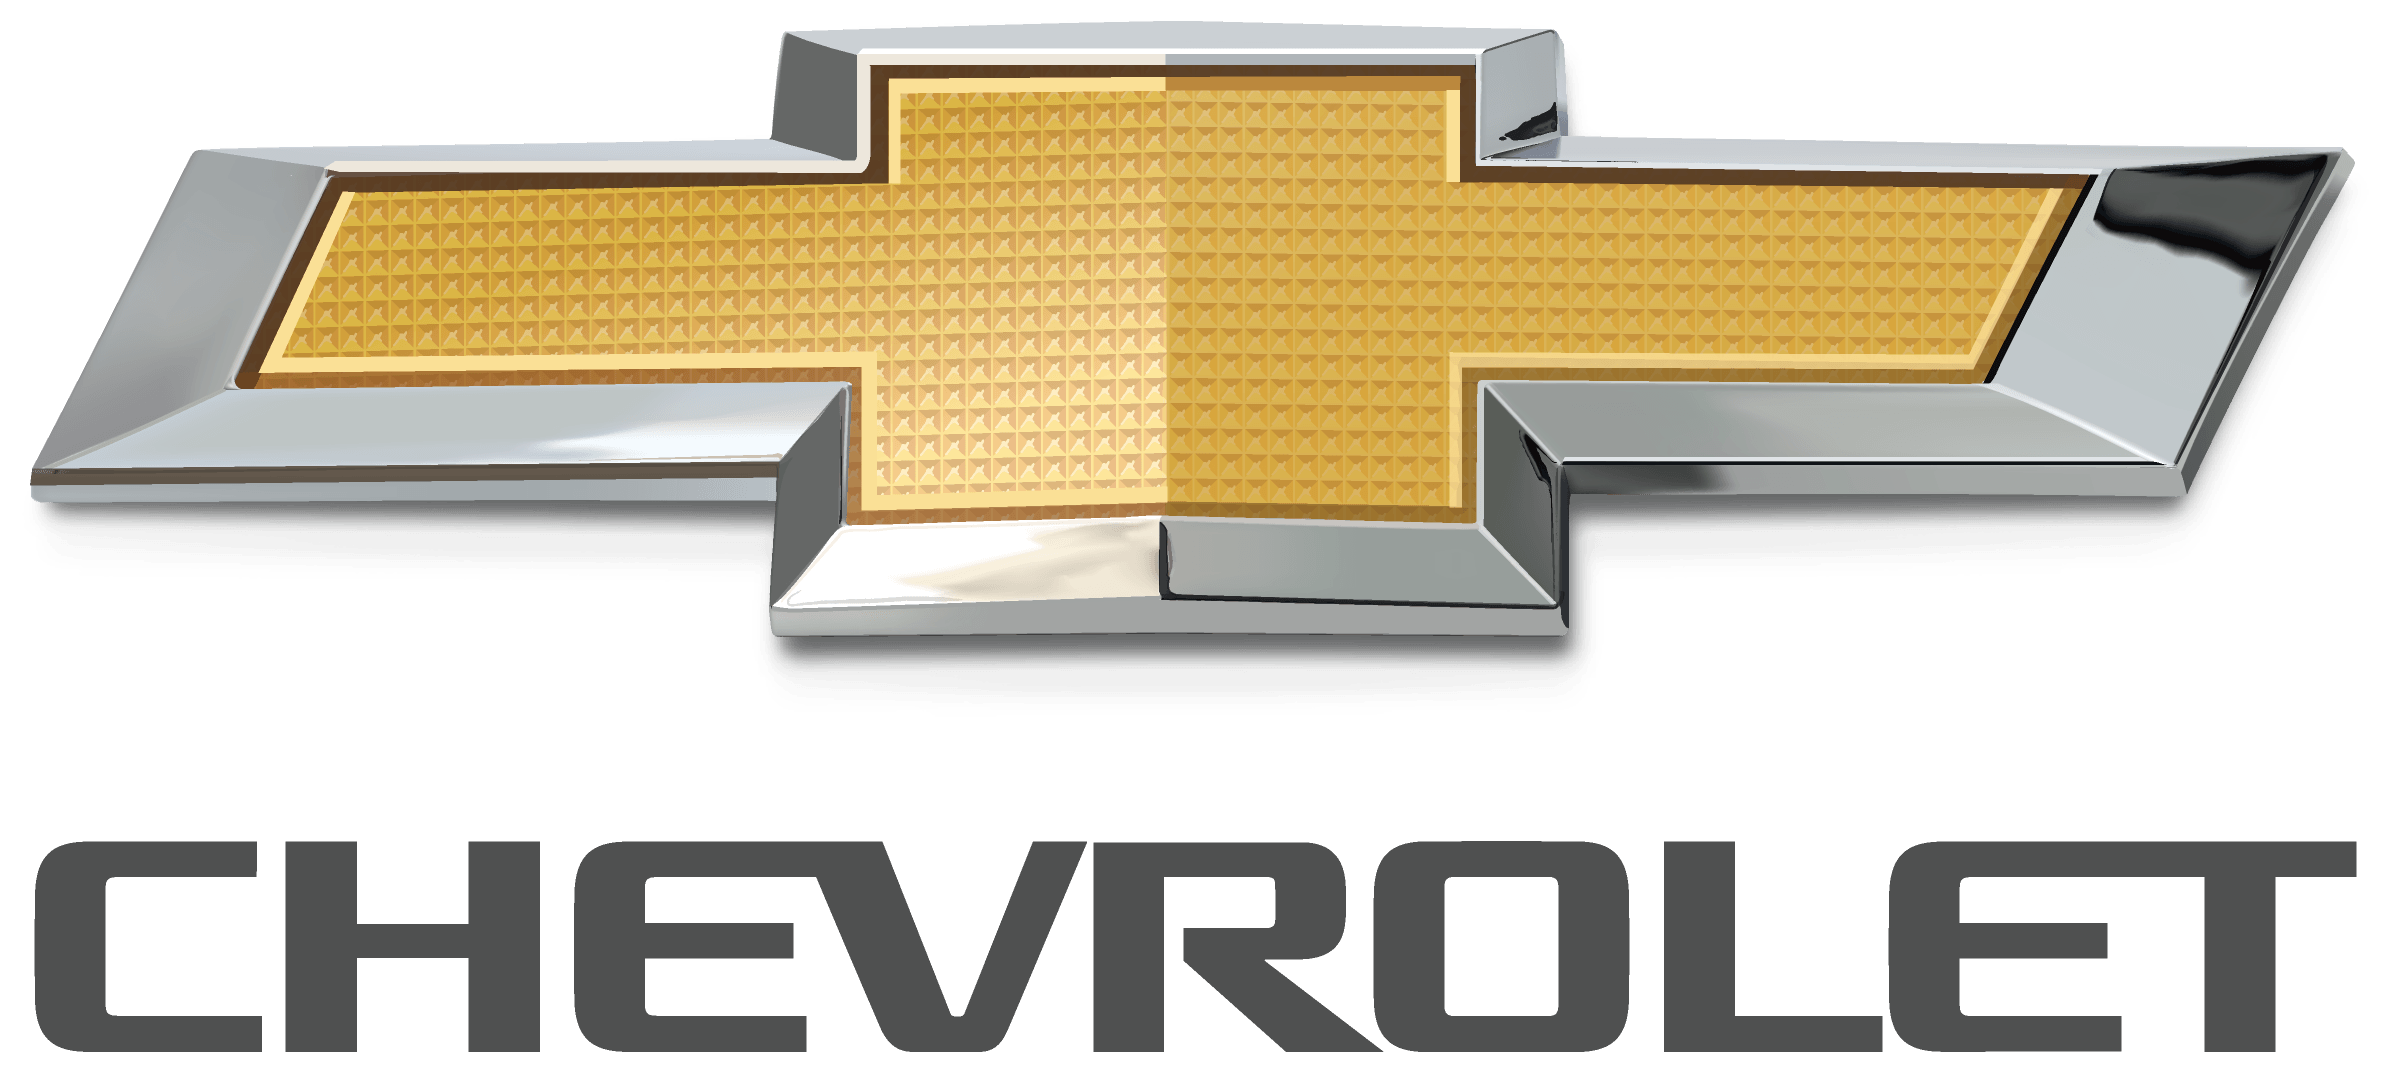 Chevrolet Logo – Chevy Vector EPS Free Download, Logo, Icons, Clipart